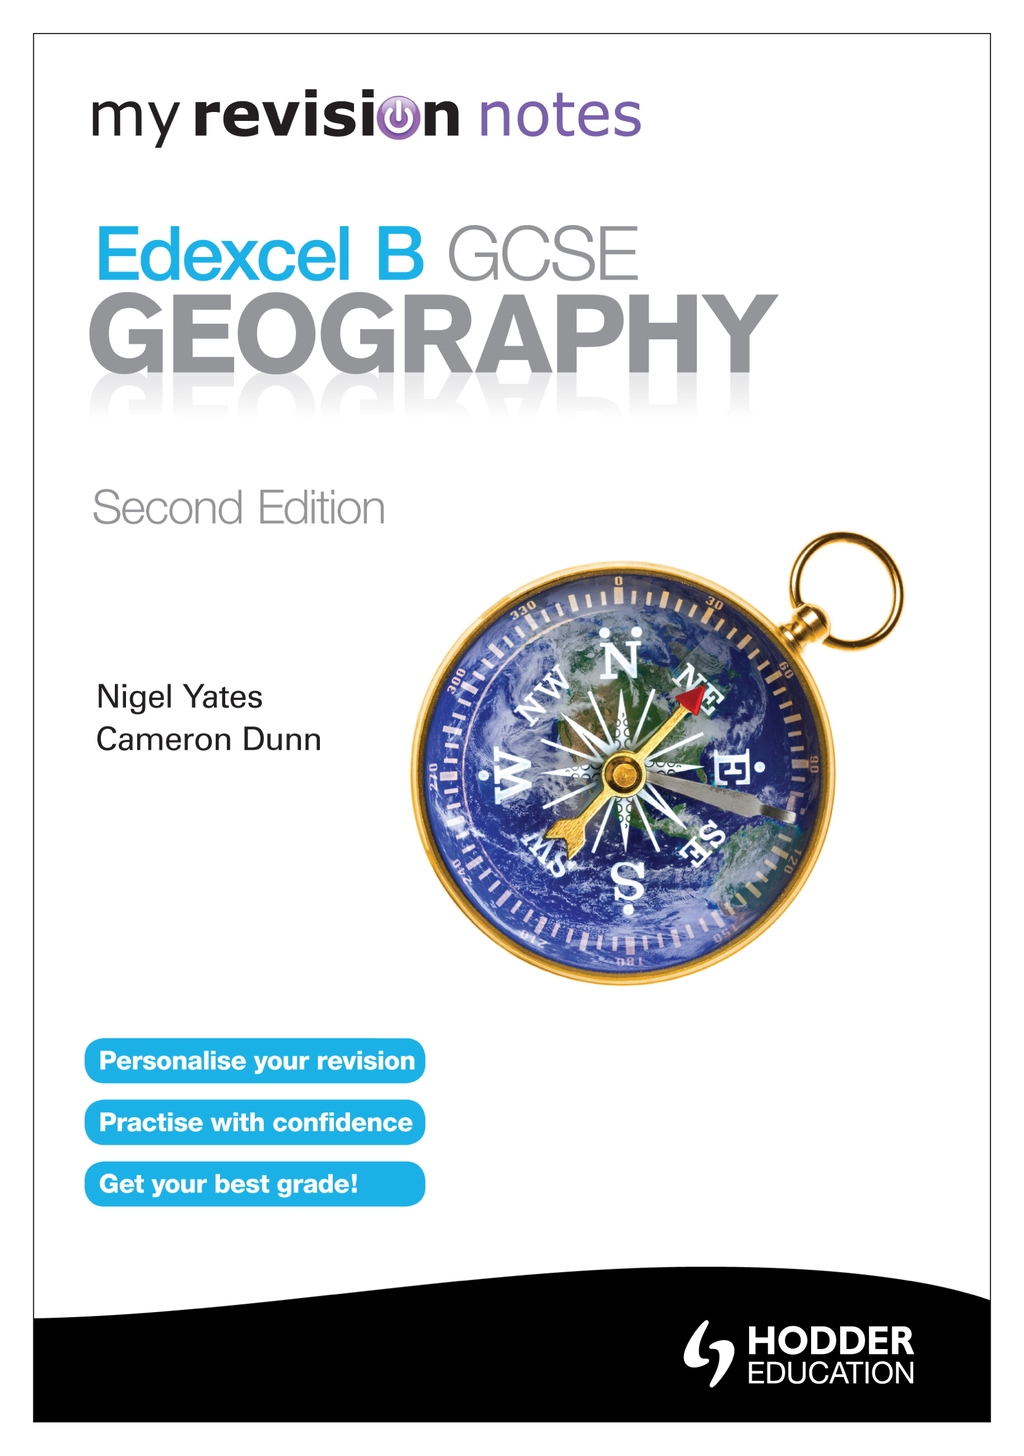 My Revision Notes: Edexcel B GCSE Geography Second Edition